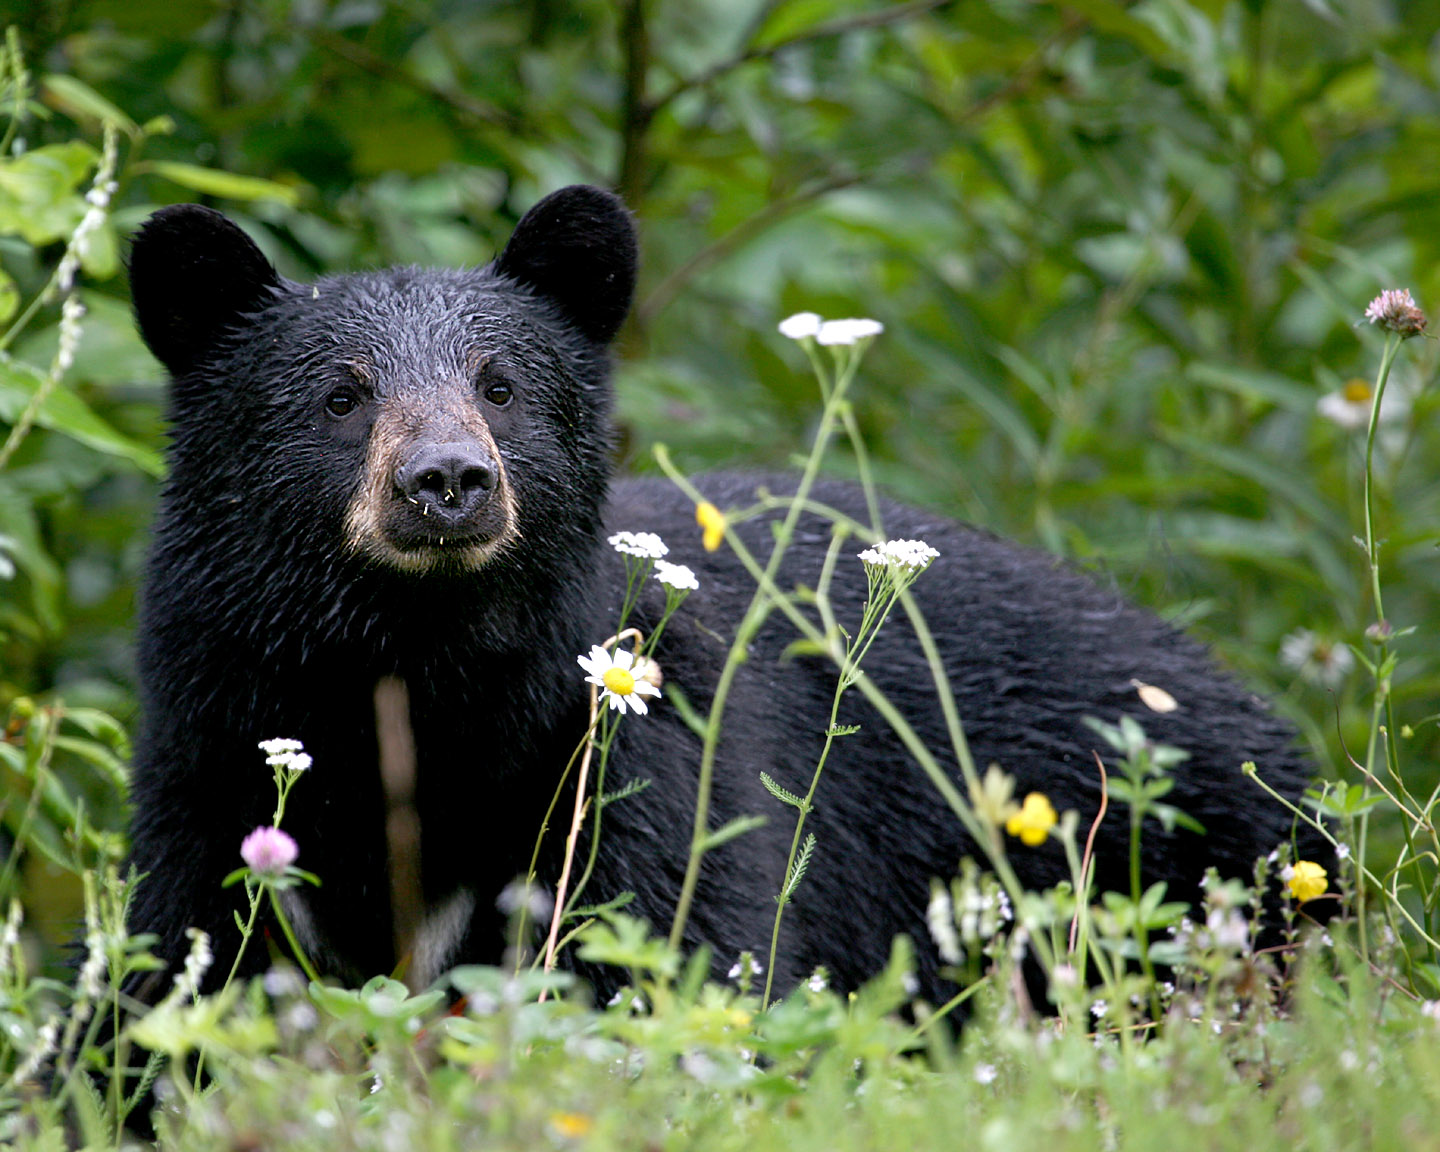 blackbearfeatureimage2